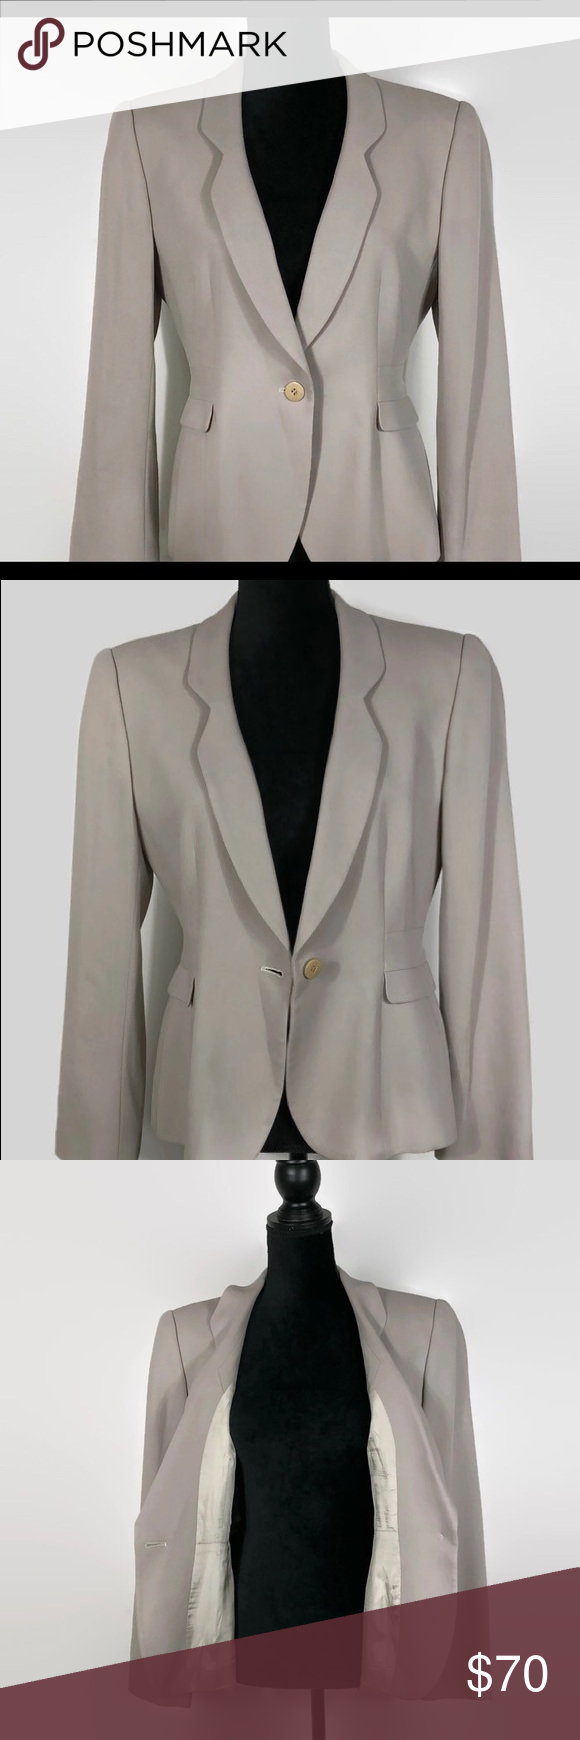 Giorgio Armani Pre-owned - Worn on the shoulder DA8oRXzPL